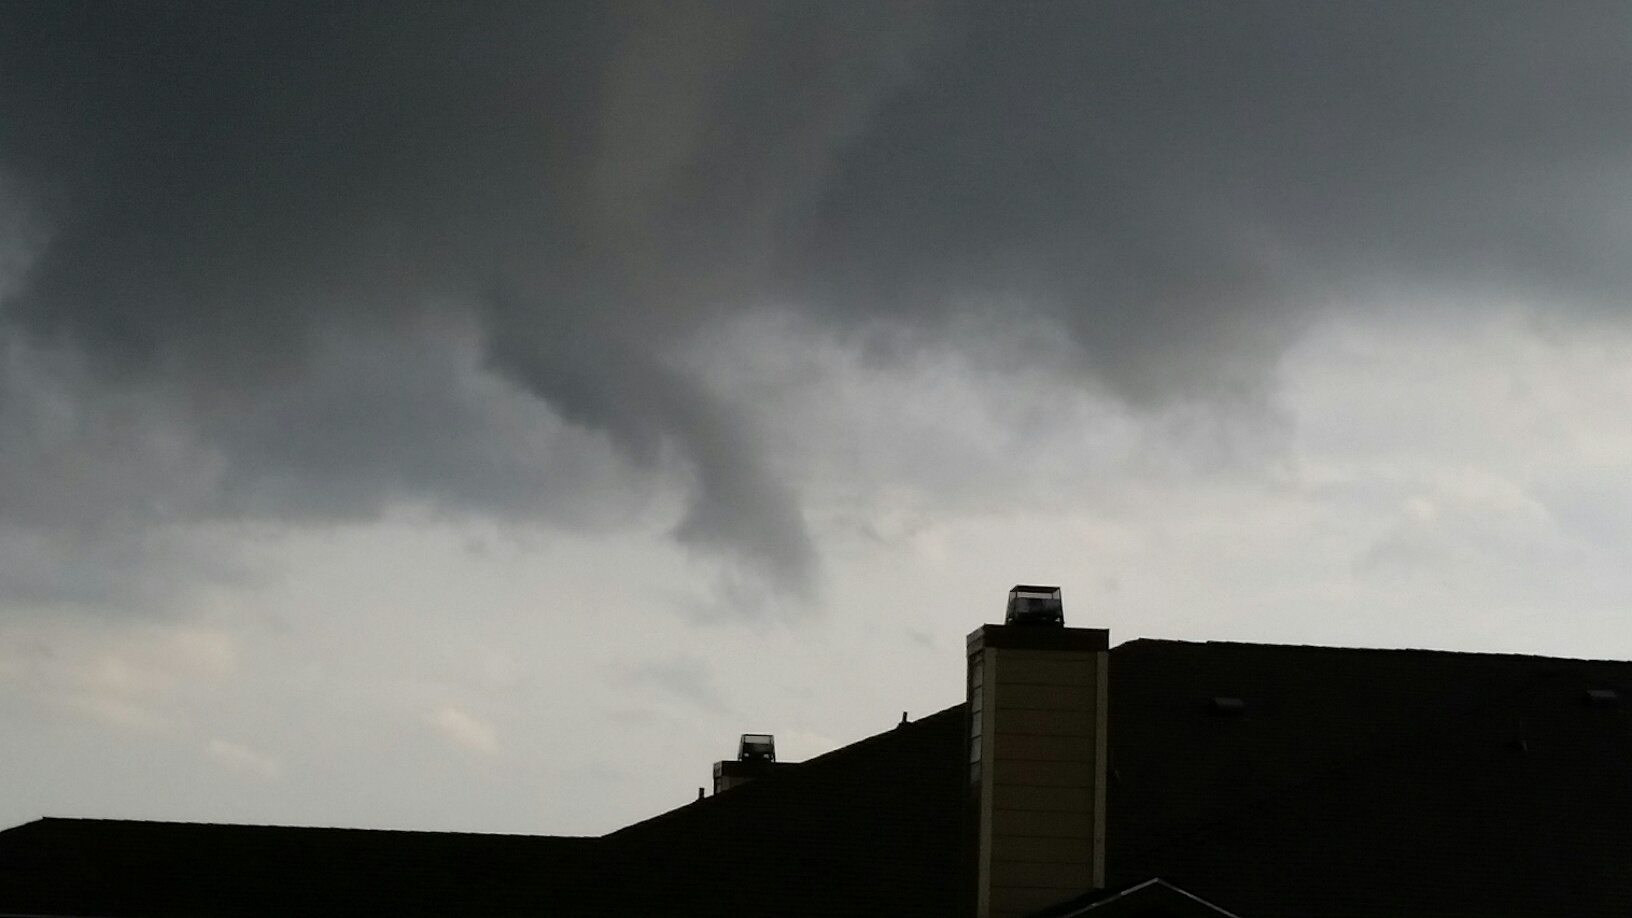 Watauga tornado picture today Ray White Road and North Tarrant Parkway.